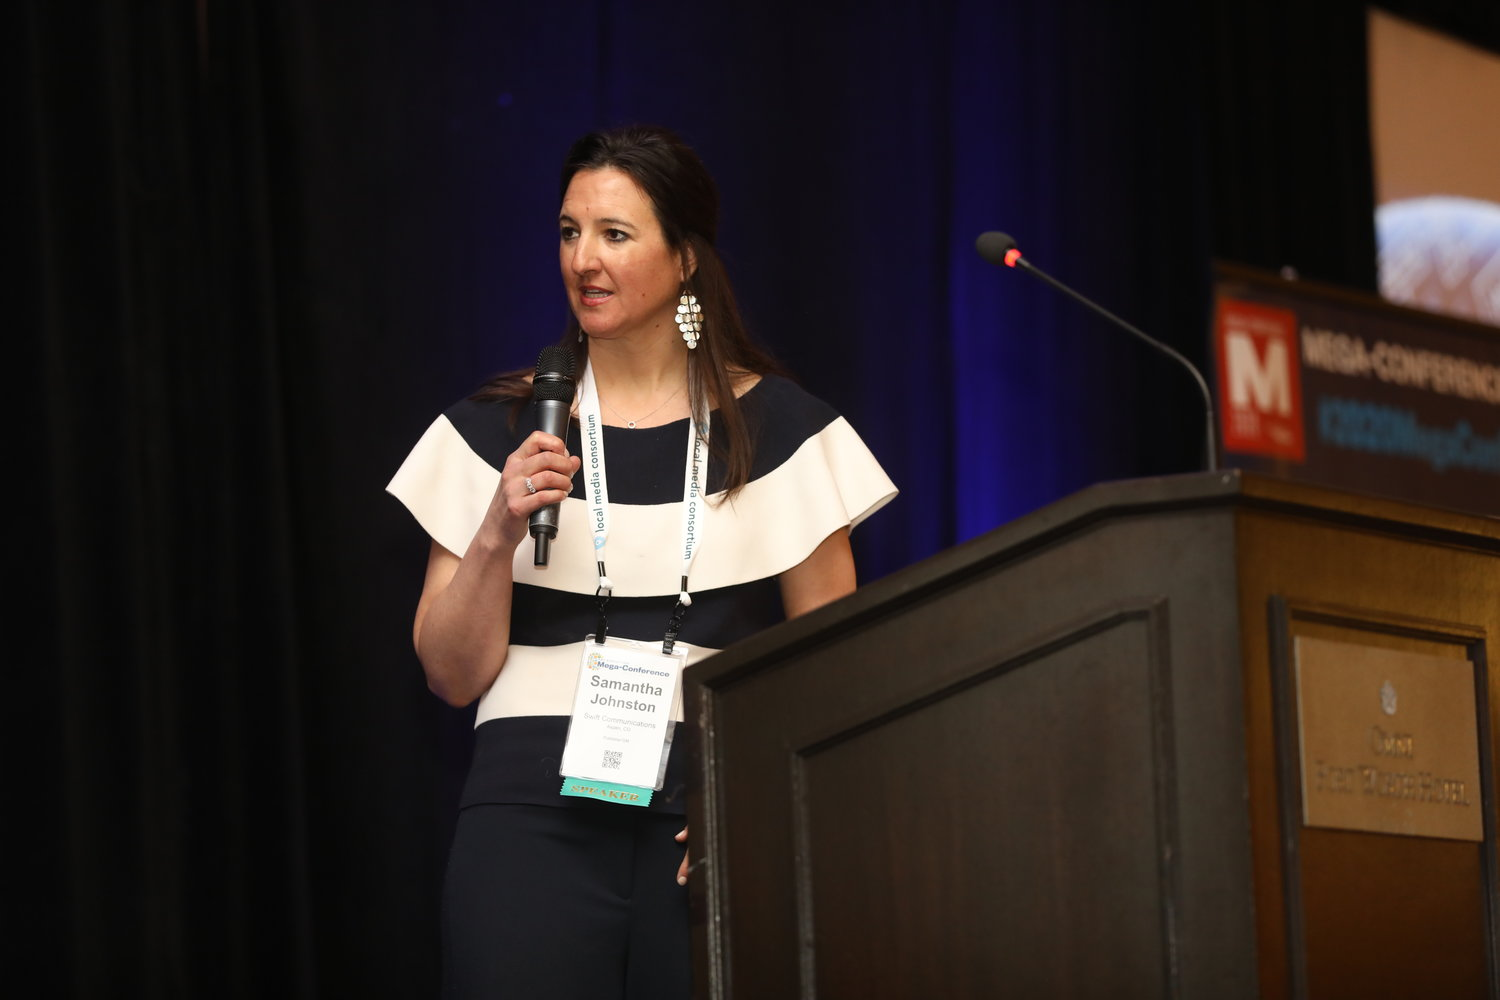 Samantha Johnston, publisher of The Aspen Times, at the Mega-Conference. (Photo by Bob Booth)